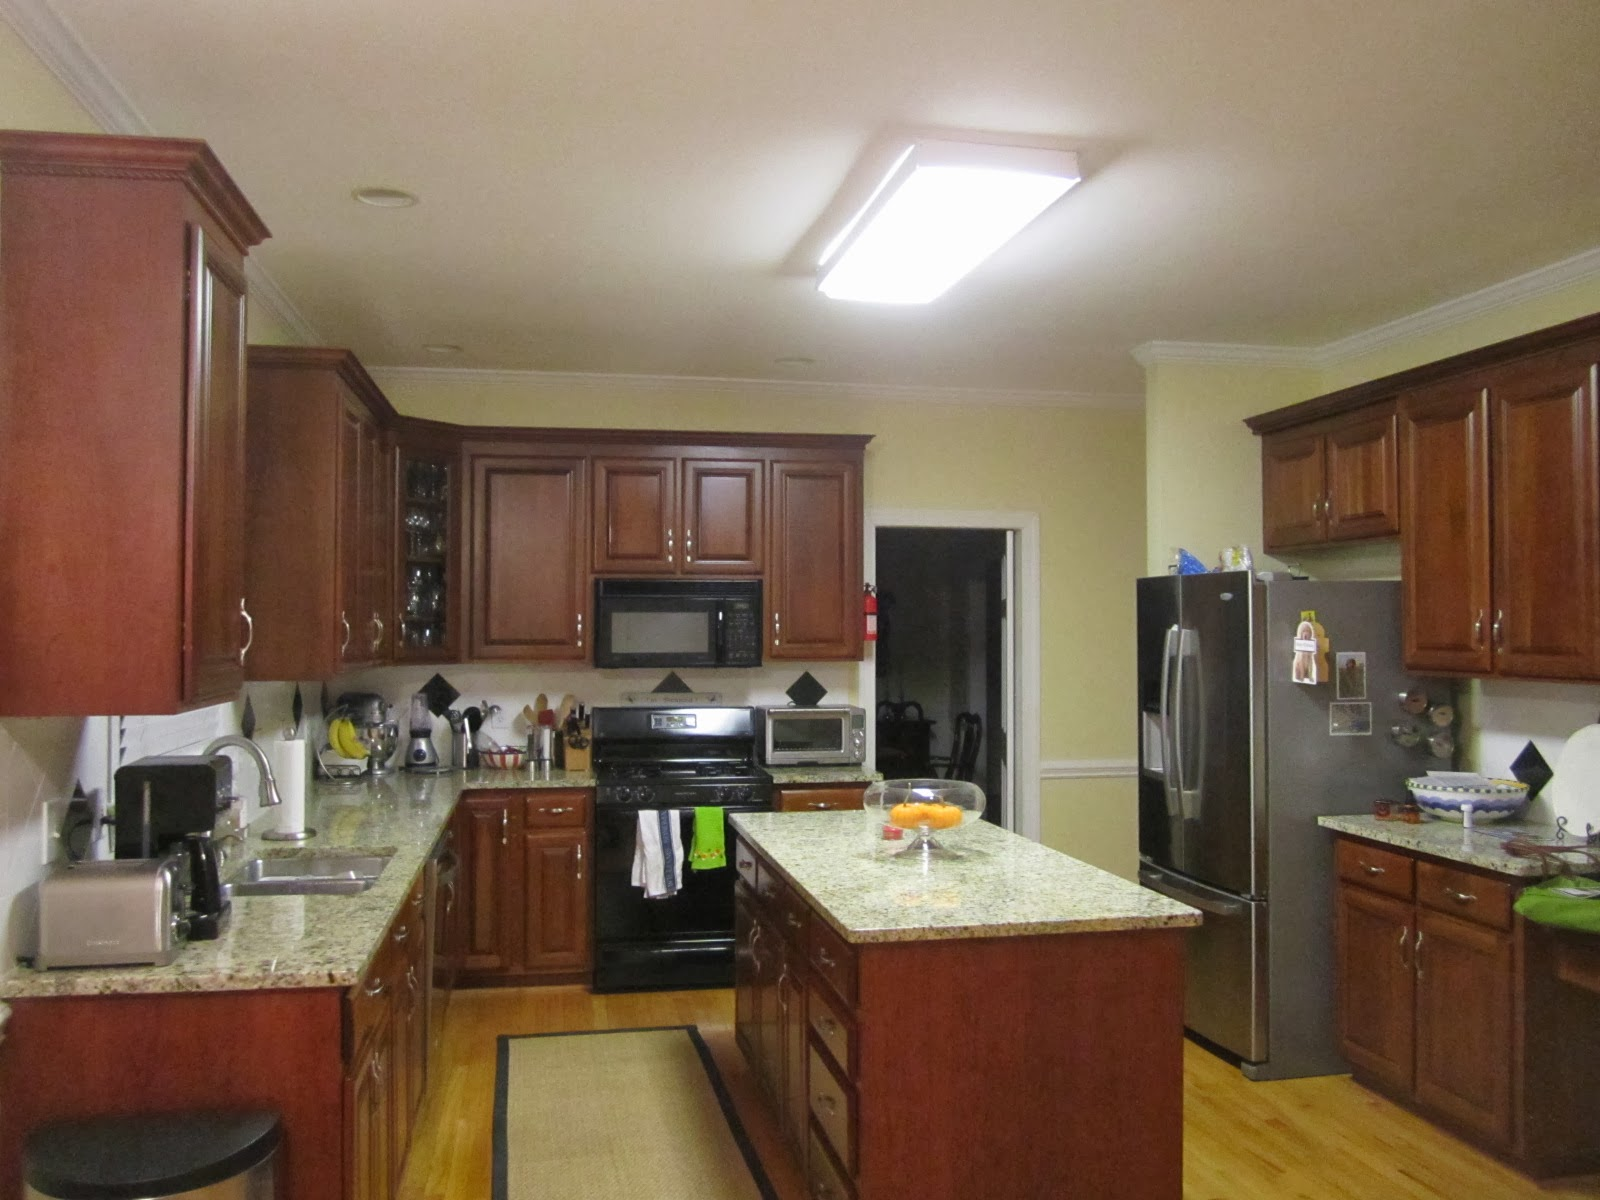 Kitchen Lighting Before And After